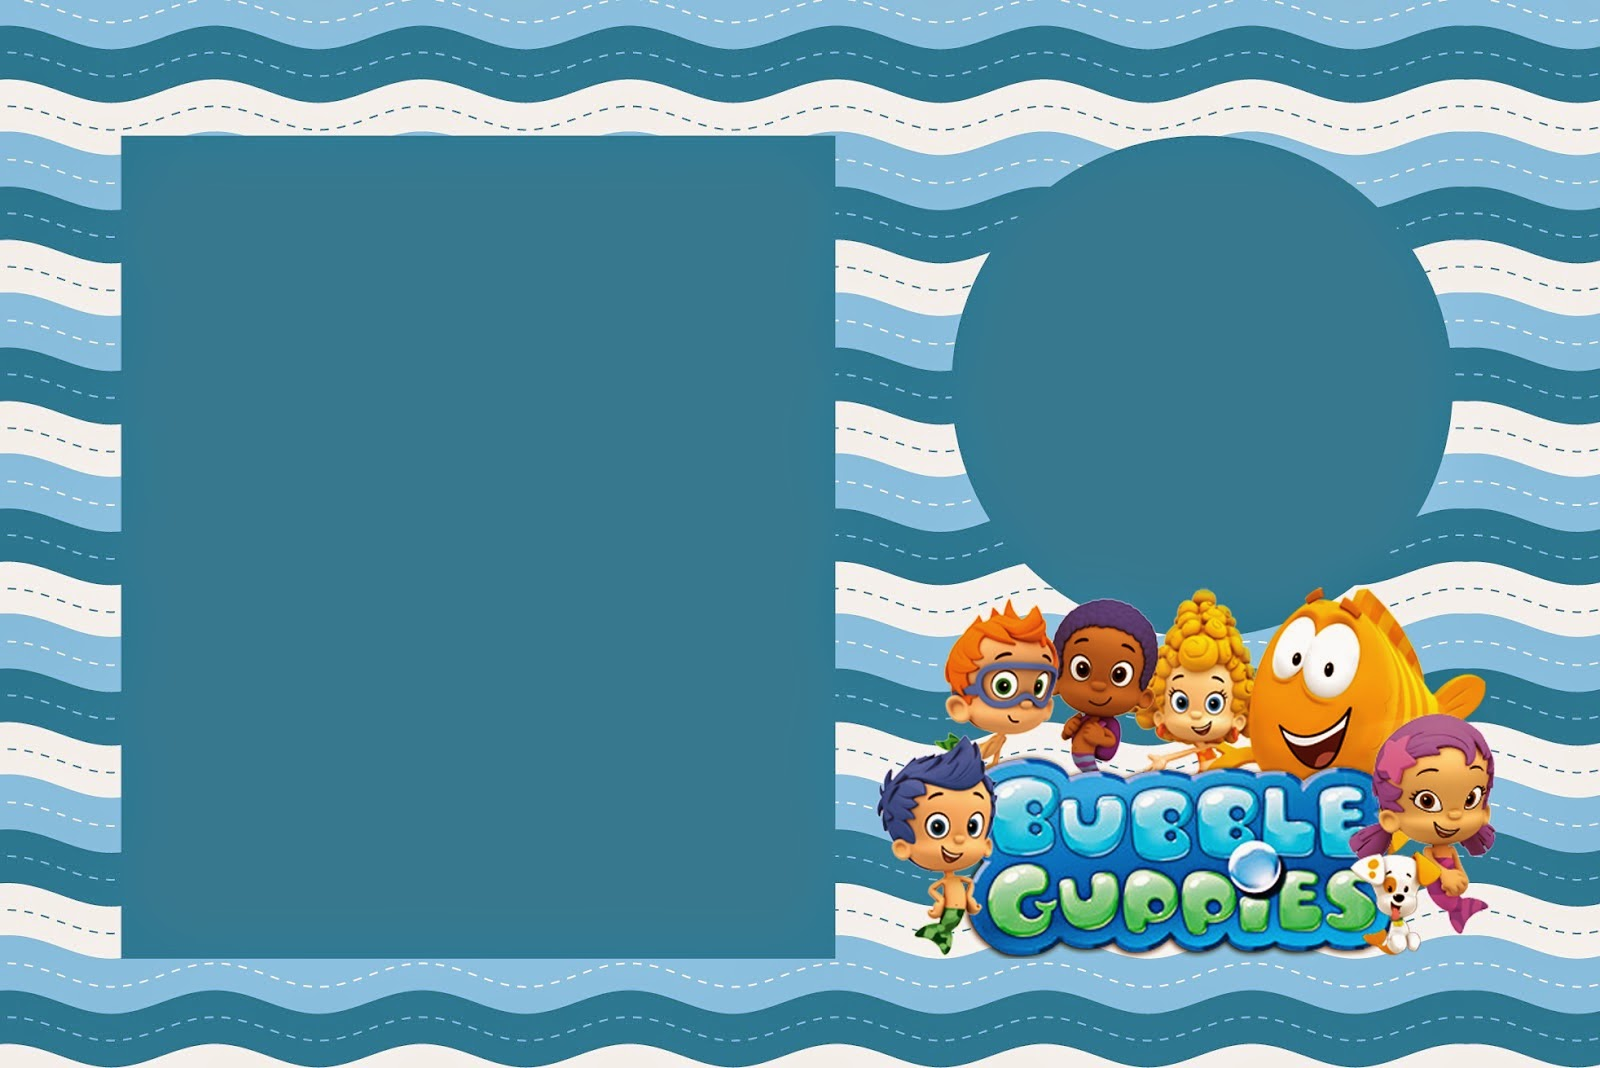 Bubble Guppies Free Printable Invitations Is It For Parties Is It Free Is It Cute Has